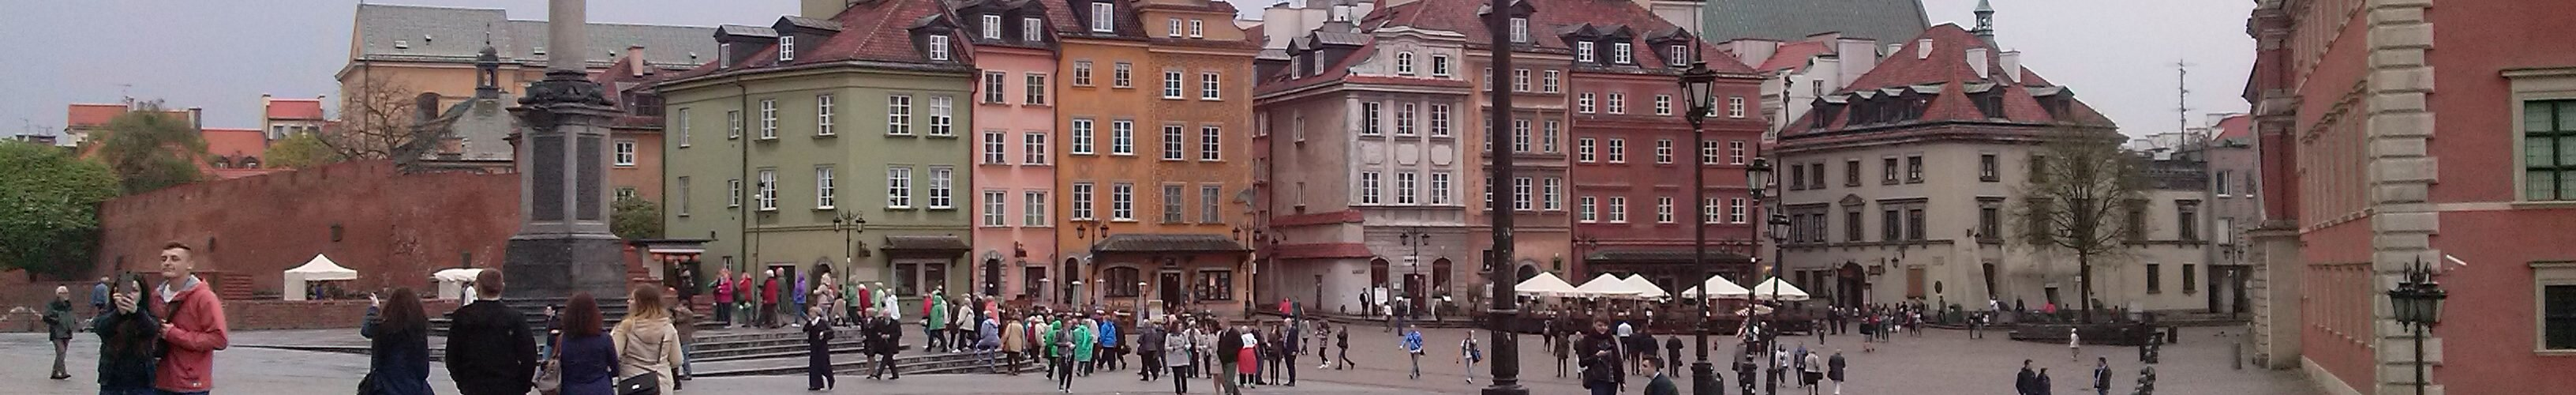 Warsaw Old Town guided tours - sightseeing Warsaw